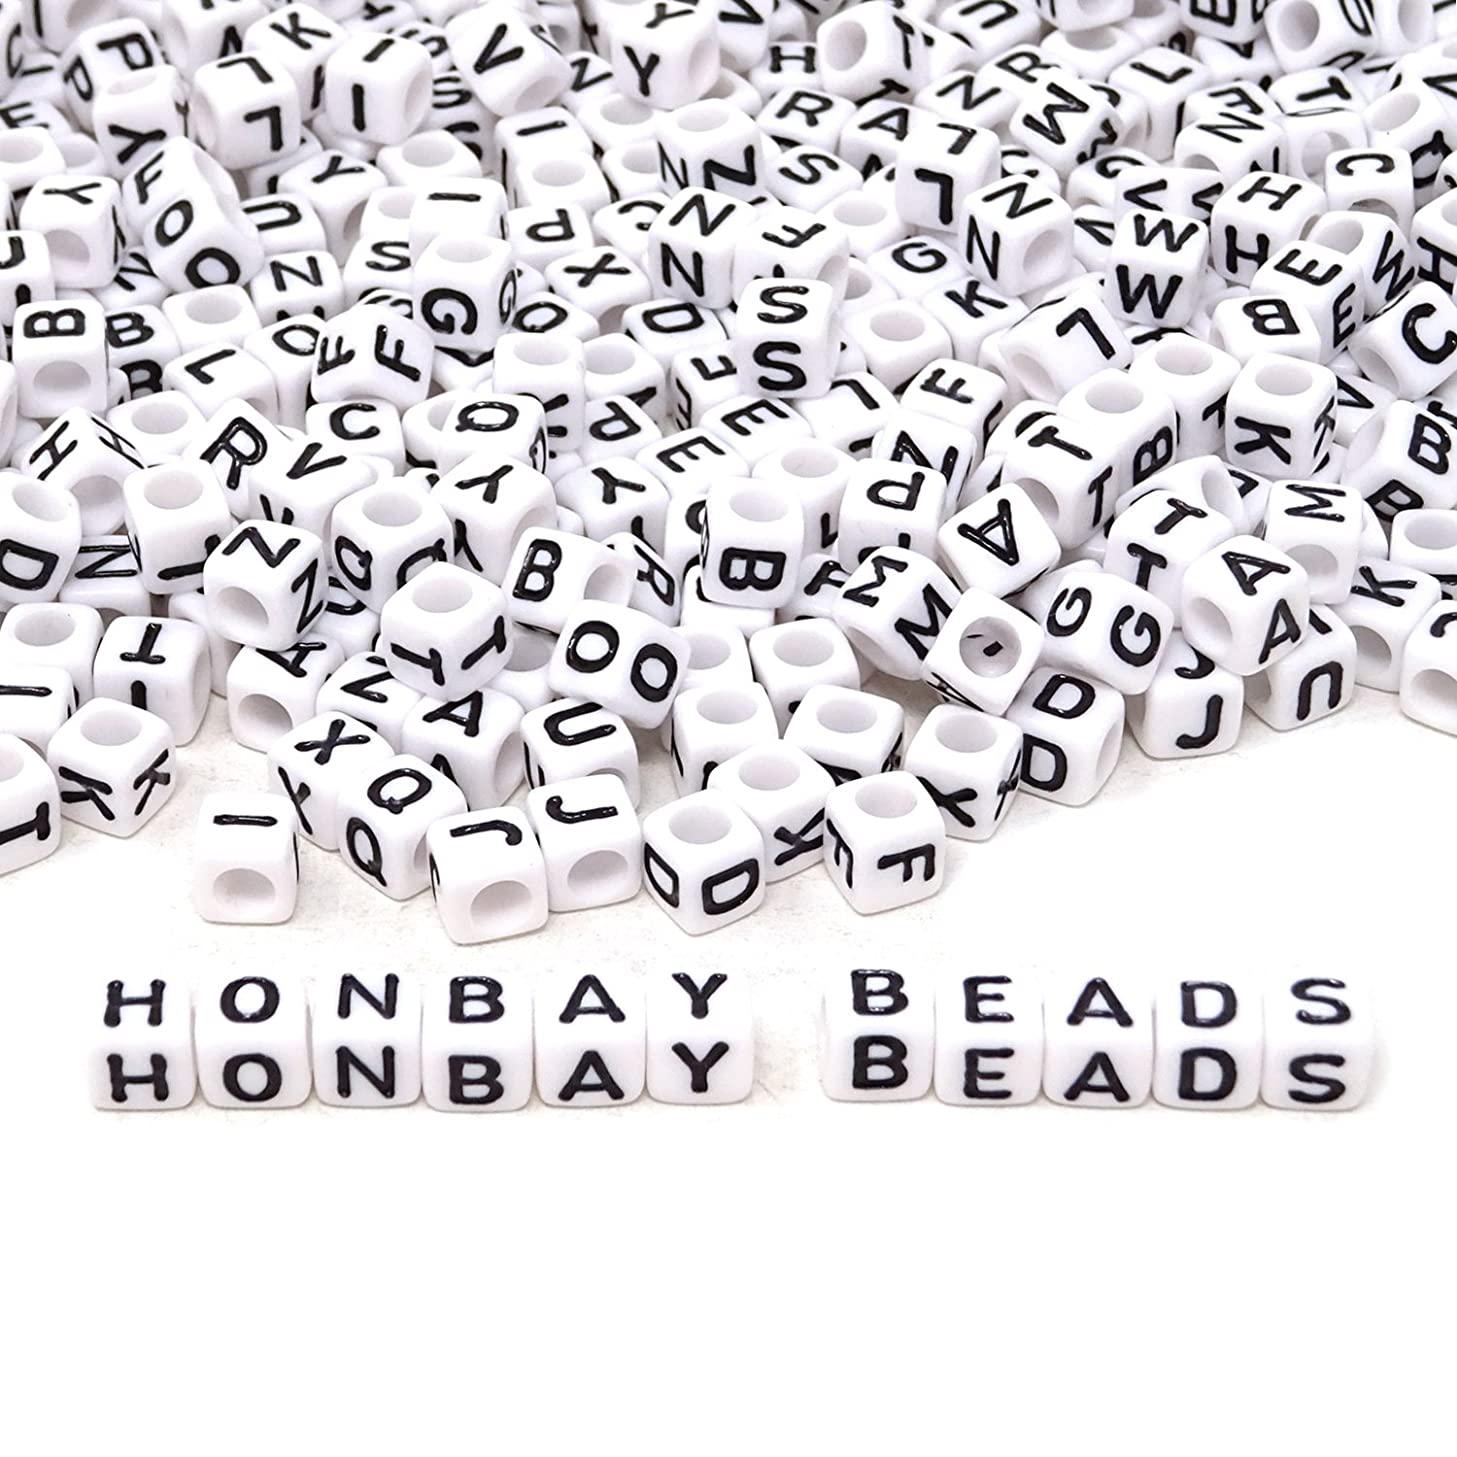 Honbay 600PCS 6mm White Acrylic Alphabet Beads Letter Beads for Jewelry Making, Bracelets, Necklaces, Key Chains and Kids Jewelry